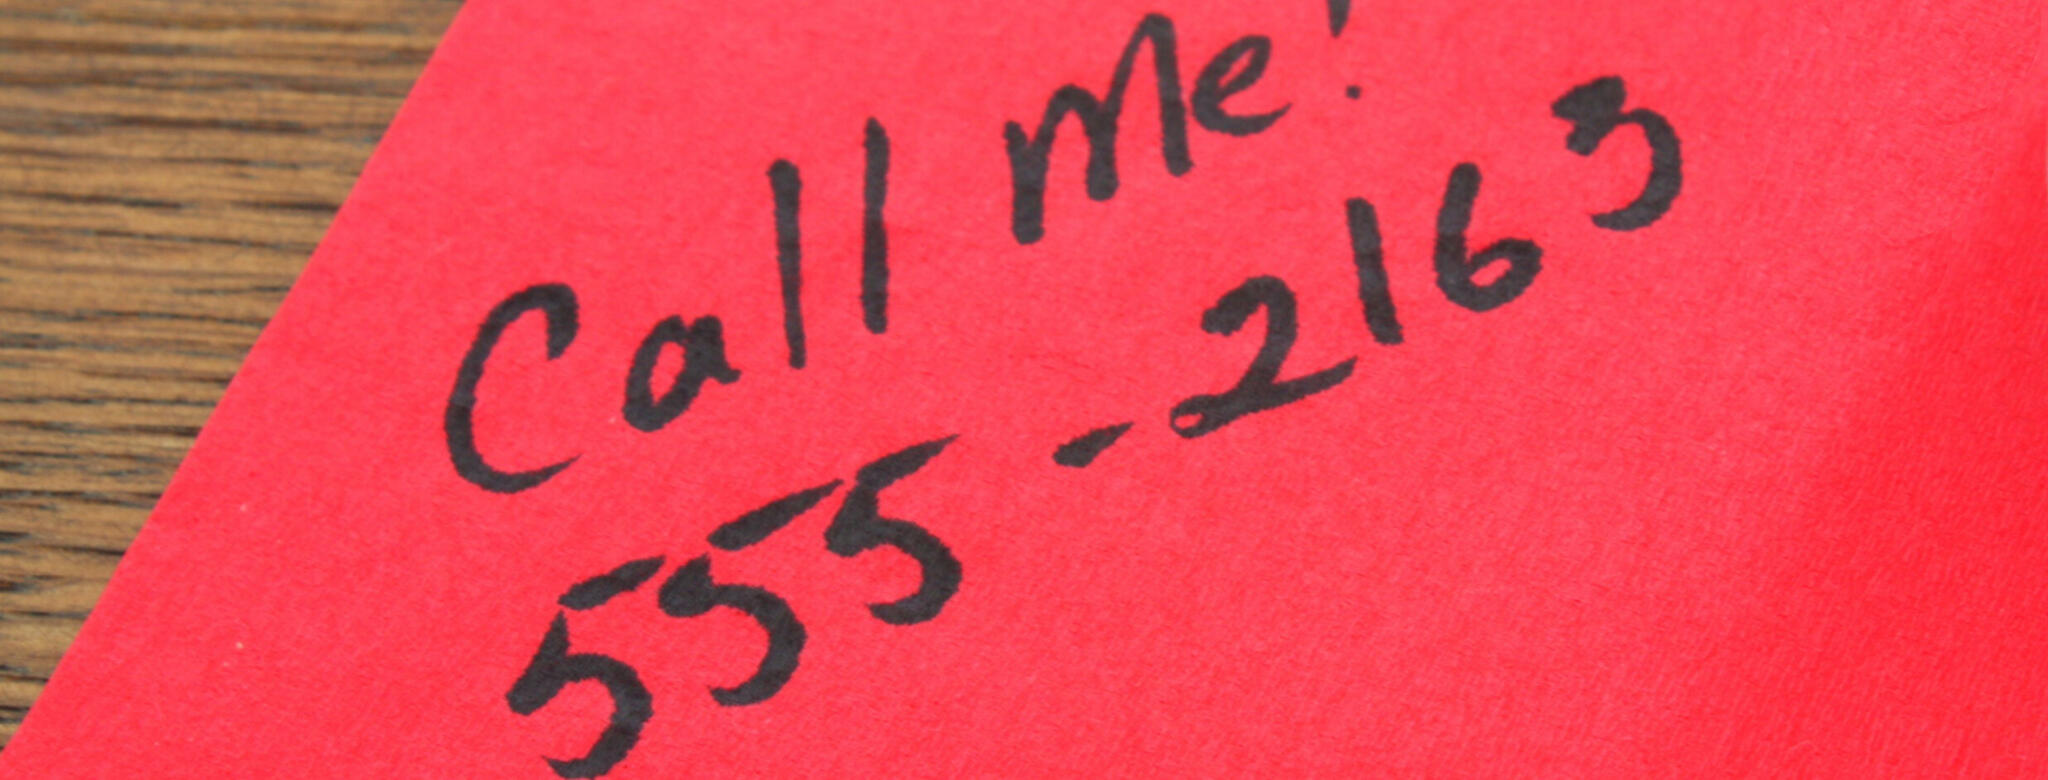 Phone number written on a napkin